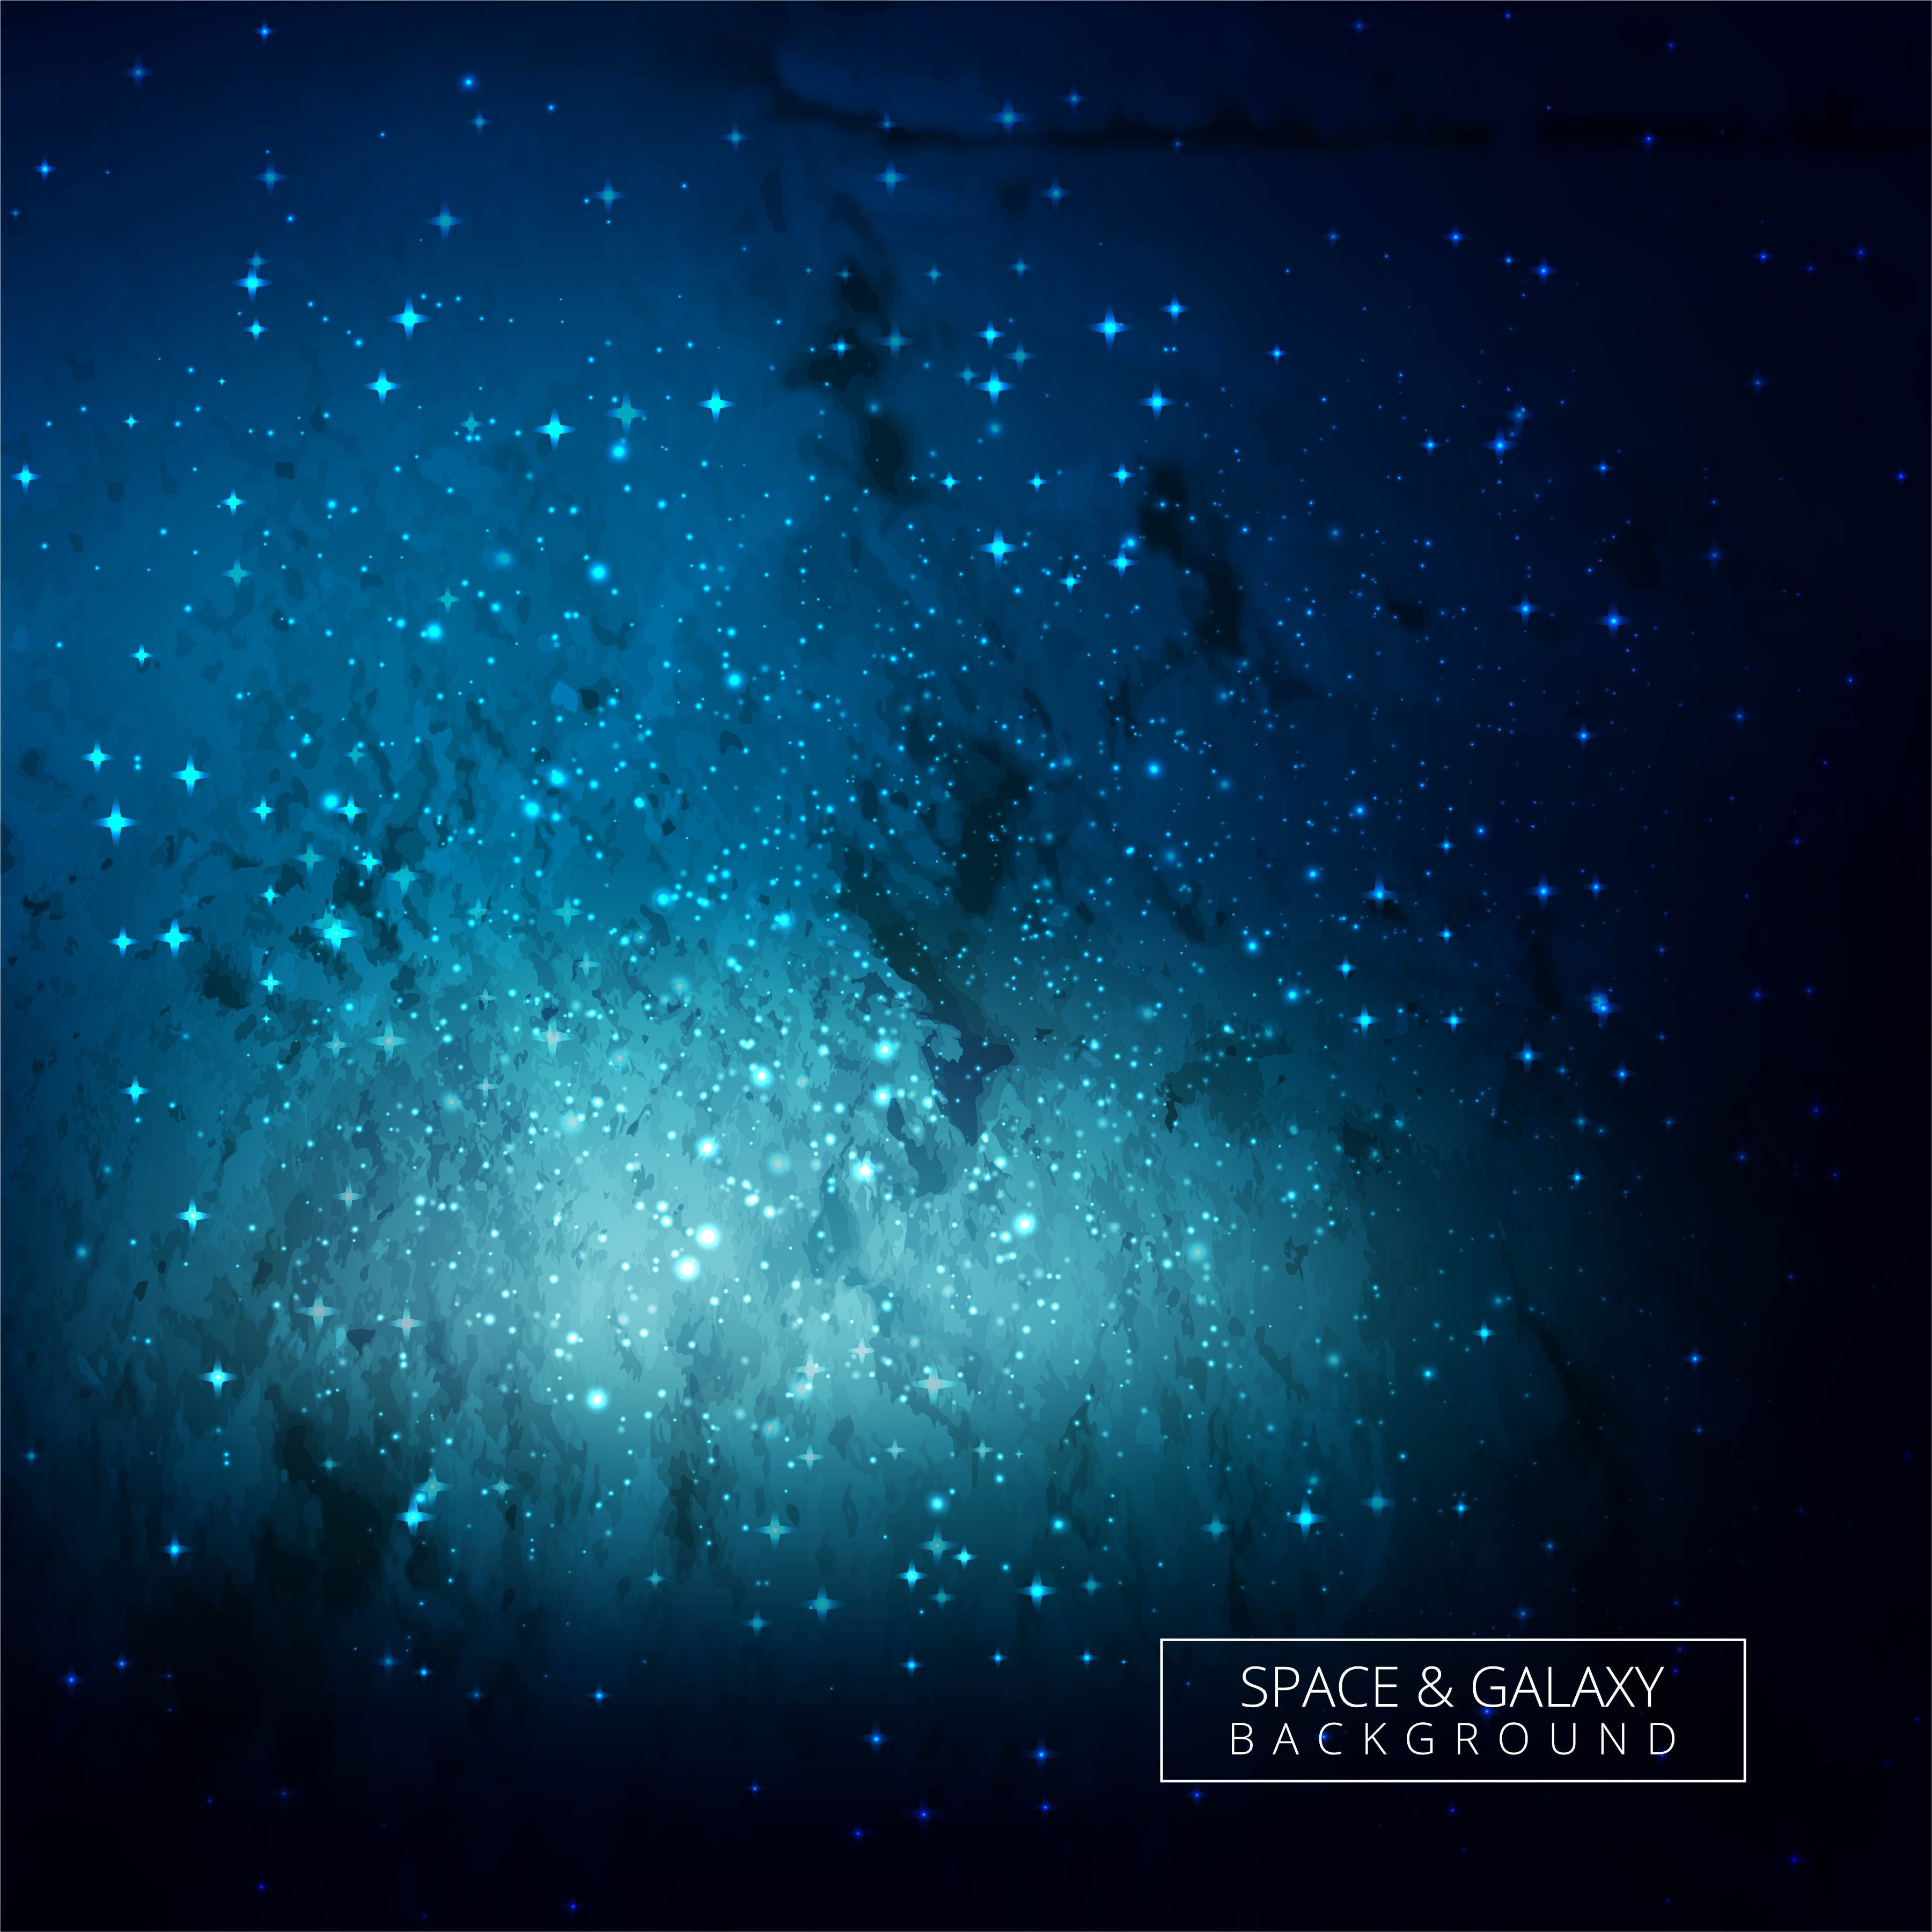 Abstract Universe Blue Galaxy Background